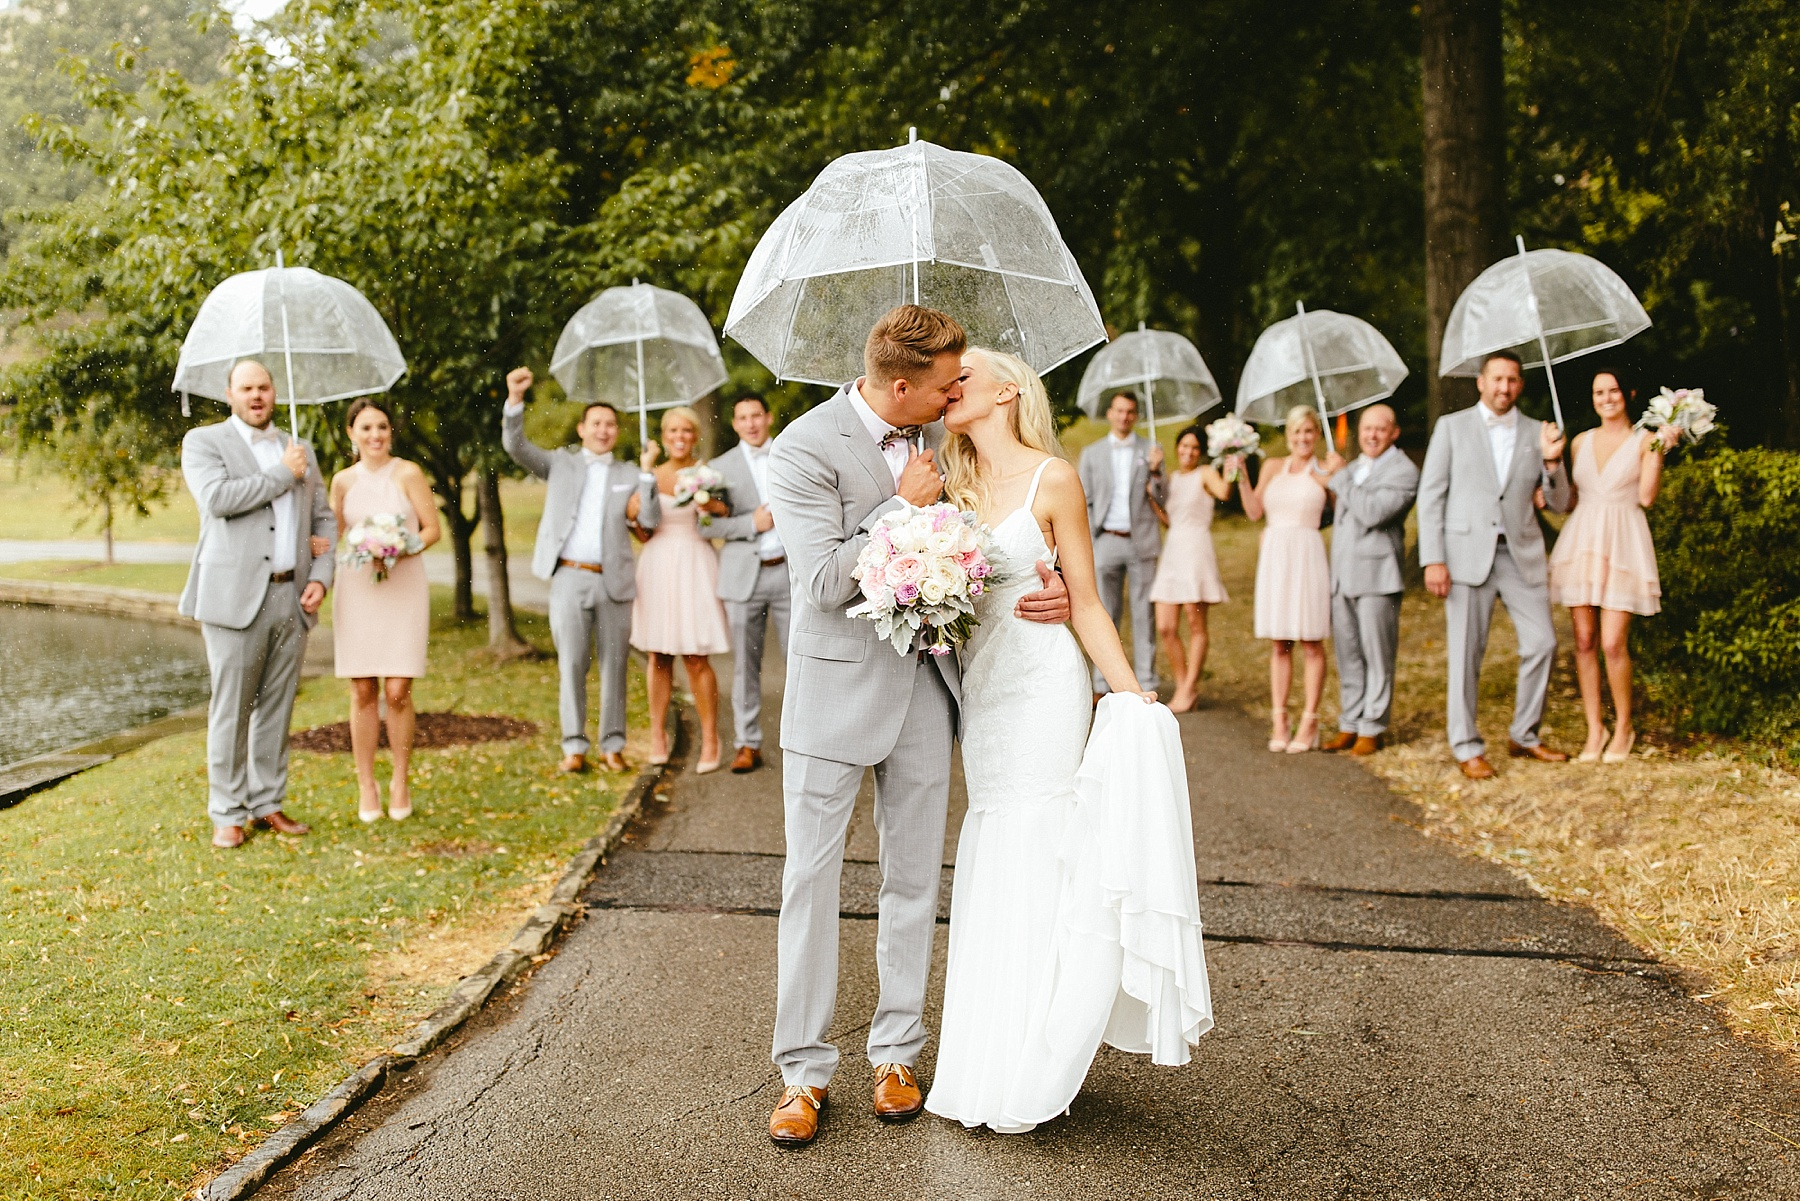 blush bridesmaid dresses, clear umbrellas for wedding, bridal party with clear umbrellas, knee length bridesmaids dresses, grey groomsmen suits, pastel wedding colors, pastel wedding theme, pastel bouquet, blush wedding flowers, unique bridal party photos, Brooklyn wedding photography, Brooklyn wedding, Philadelphia wedding photographer, Philadelphia wedding, Brooklyn new york photographer, unique wedding inspiration, fun wedding photos, romantic wedding, destination wedding photographer